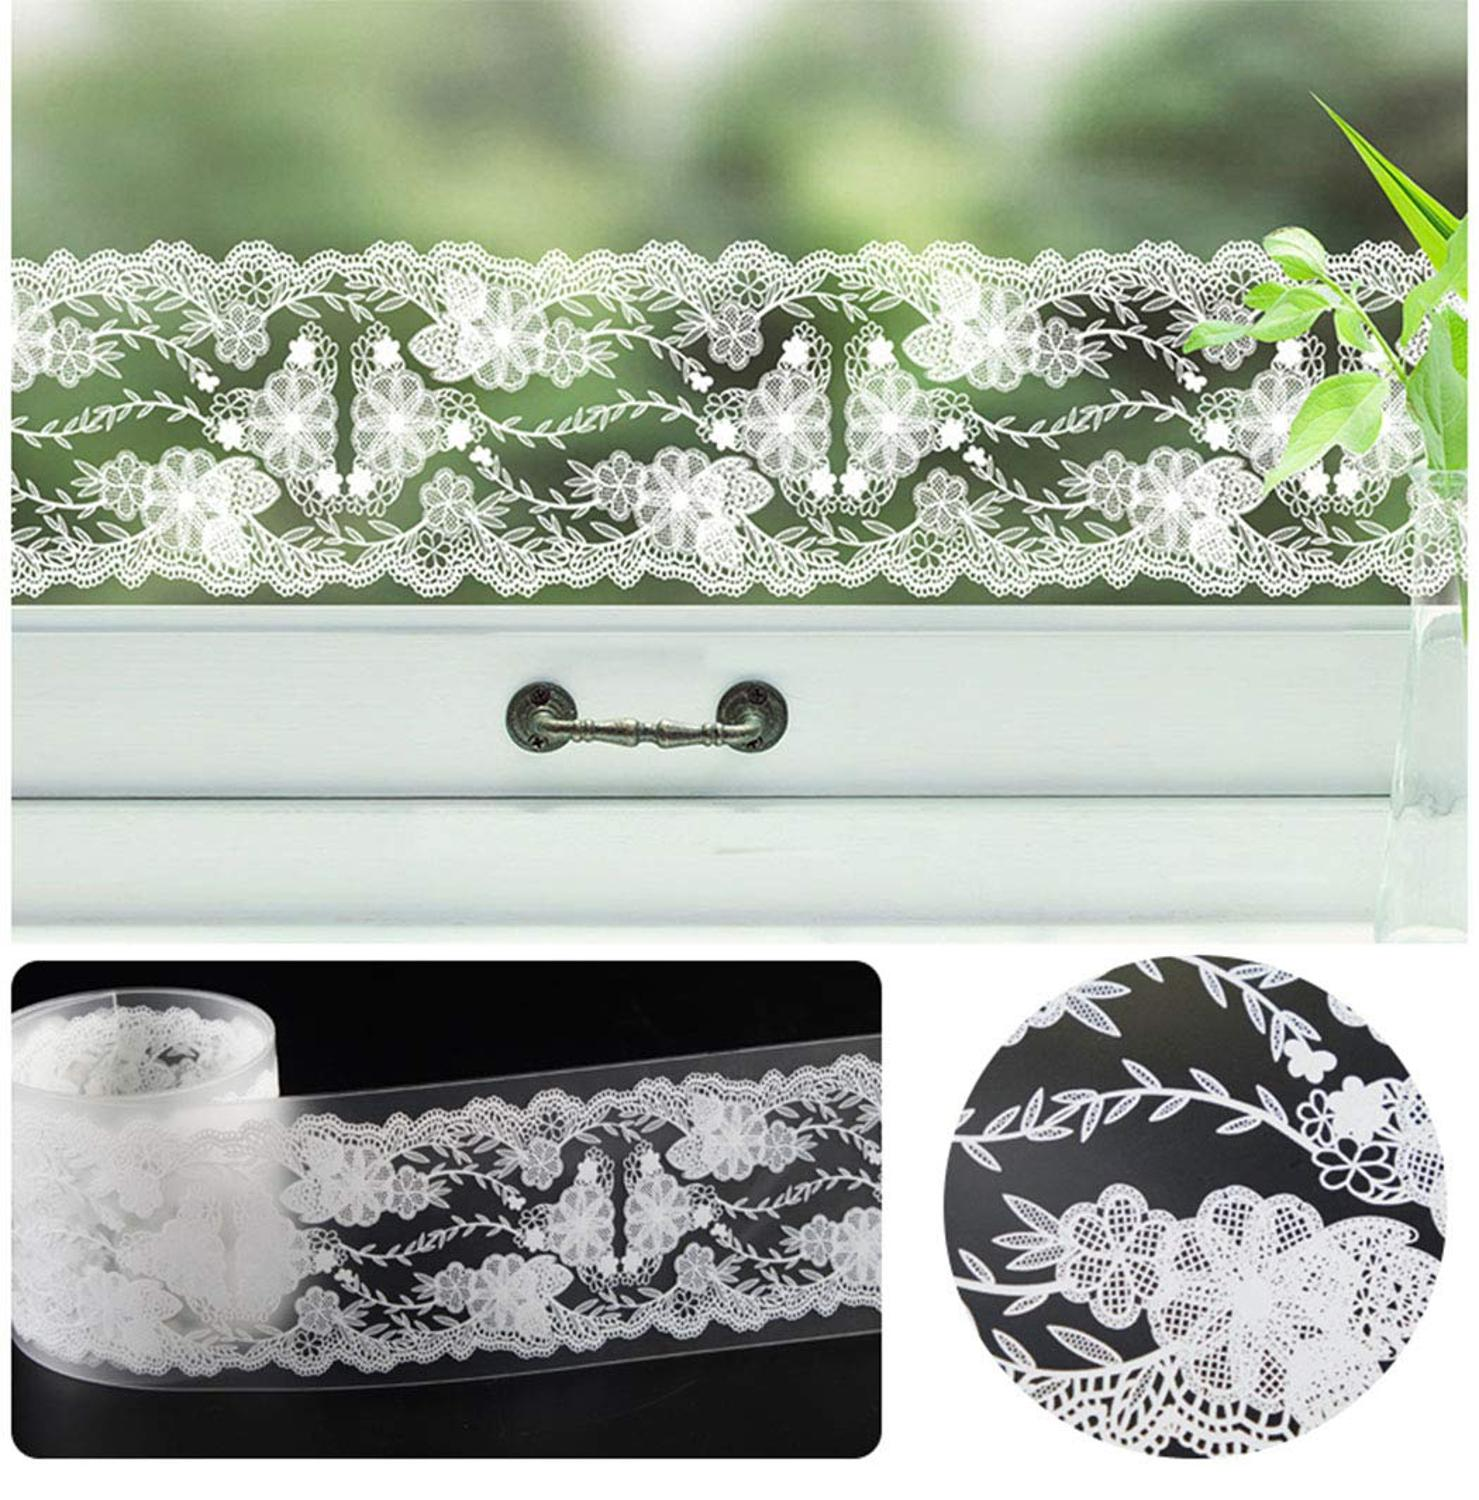 GLOW4U White Lace Peel and Stick Wallpaper Border for Bathroom Kitchen Window Mirror Transparent Shop Home